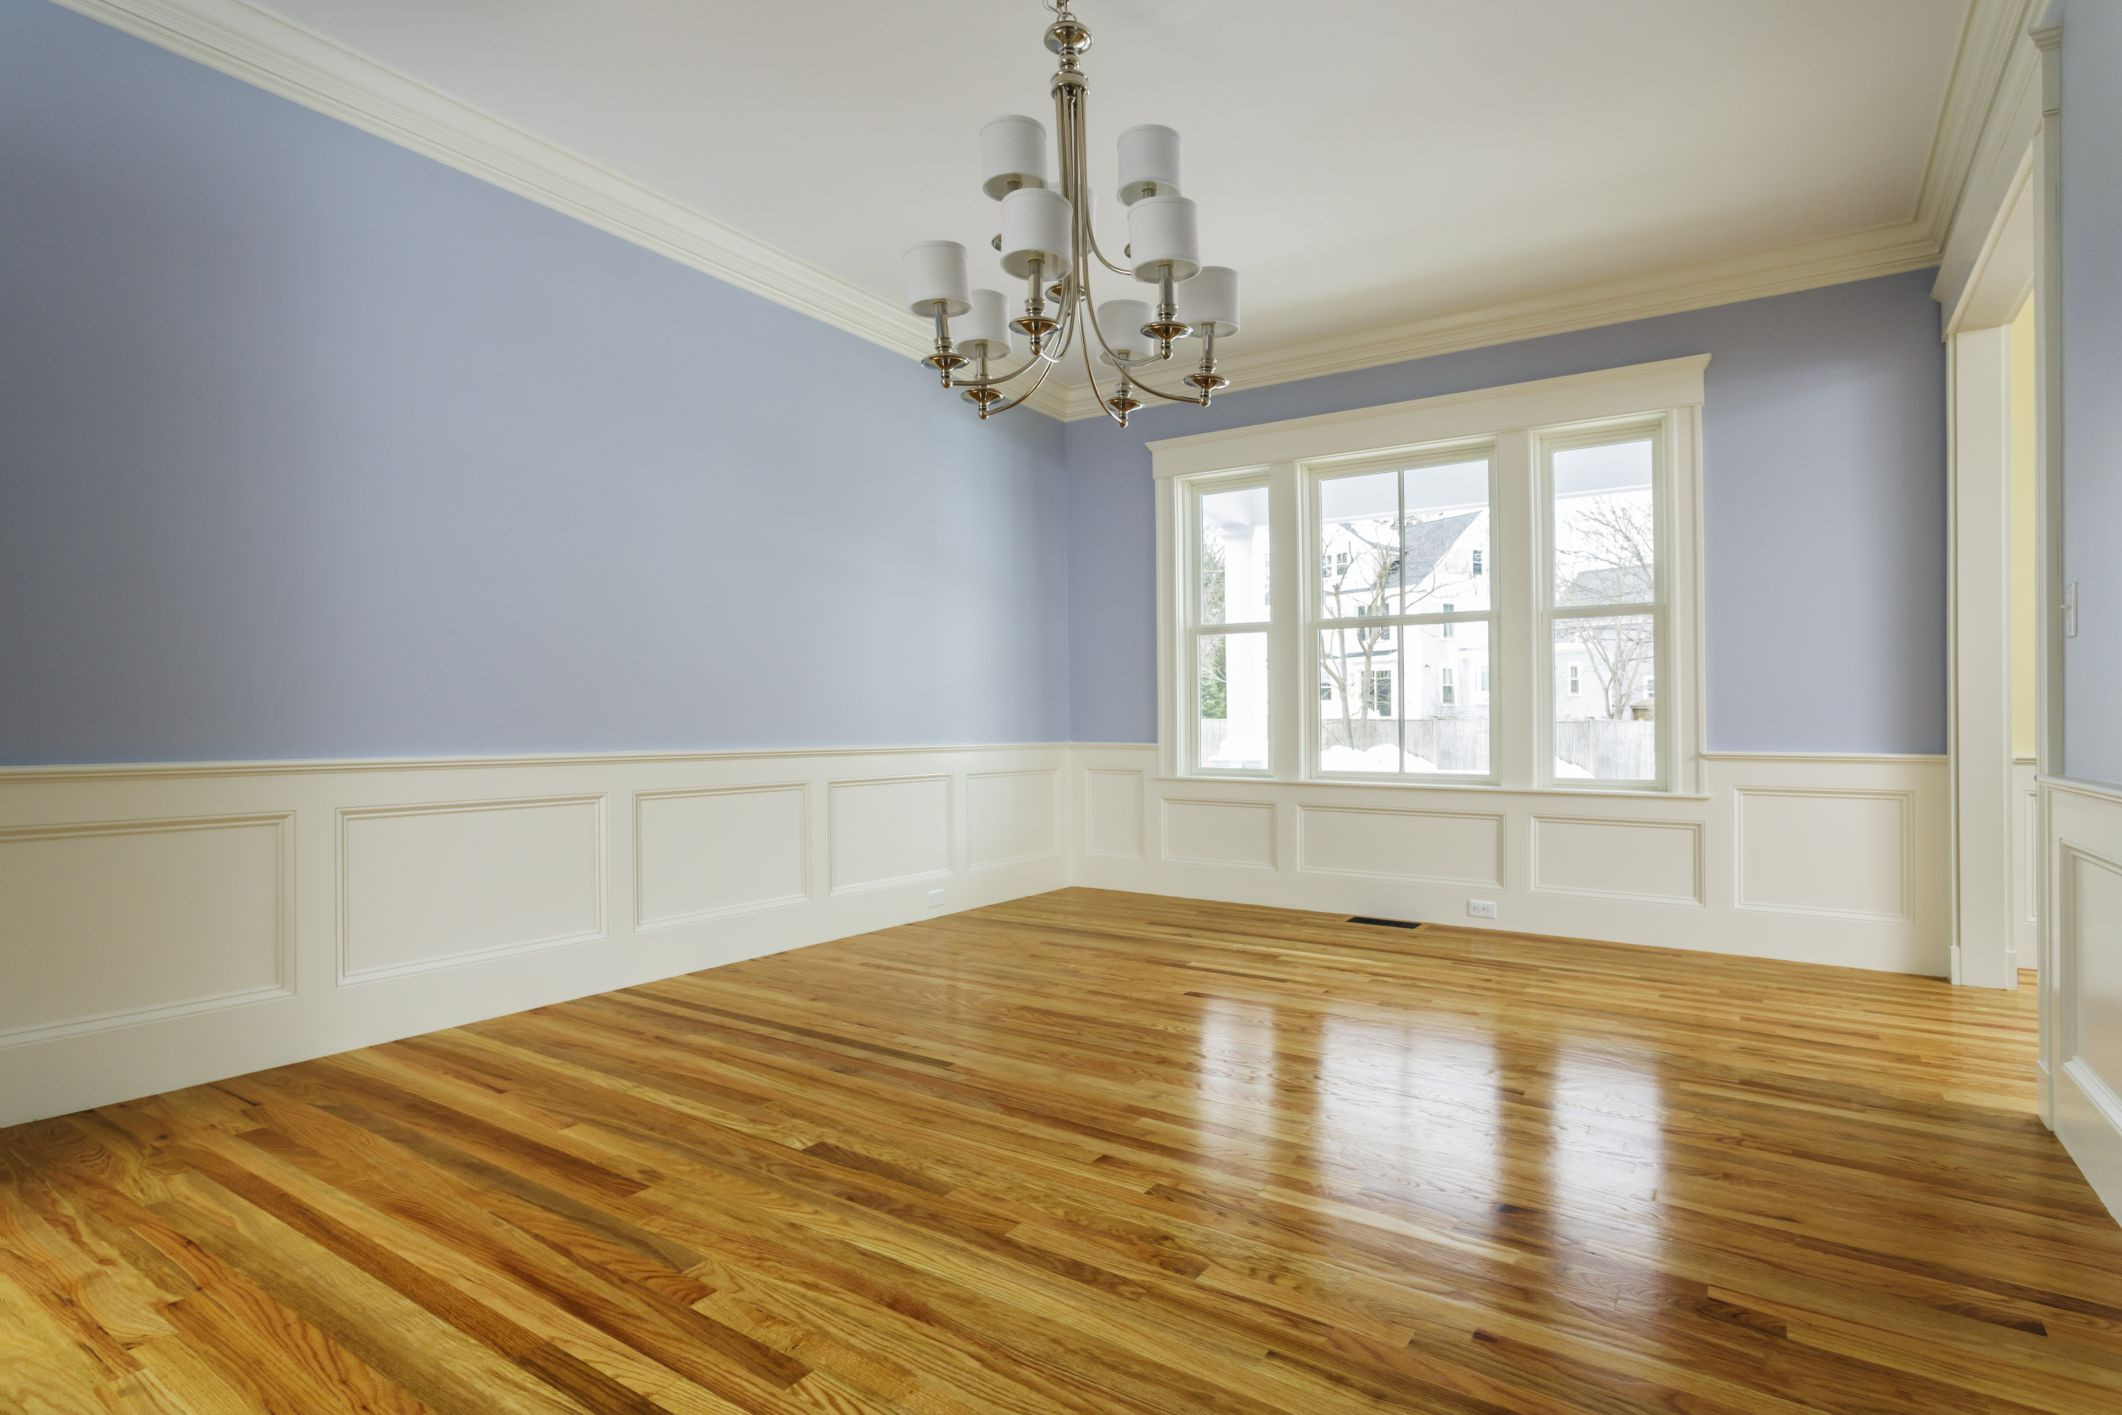 Average Cost Of Hardwood Flooring Installed Canada Of the Cost to Refinish Hardwood Floors Throughout 168686572 Highres 56a2fd773df78cf7727b6cb3